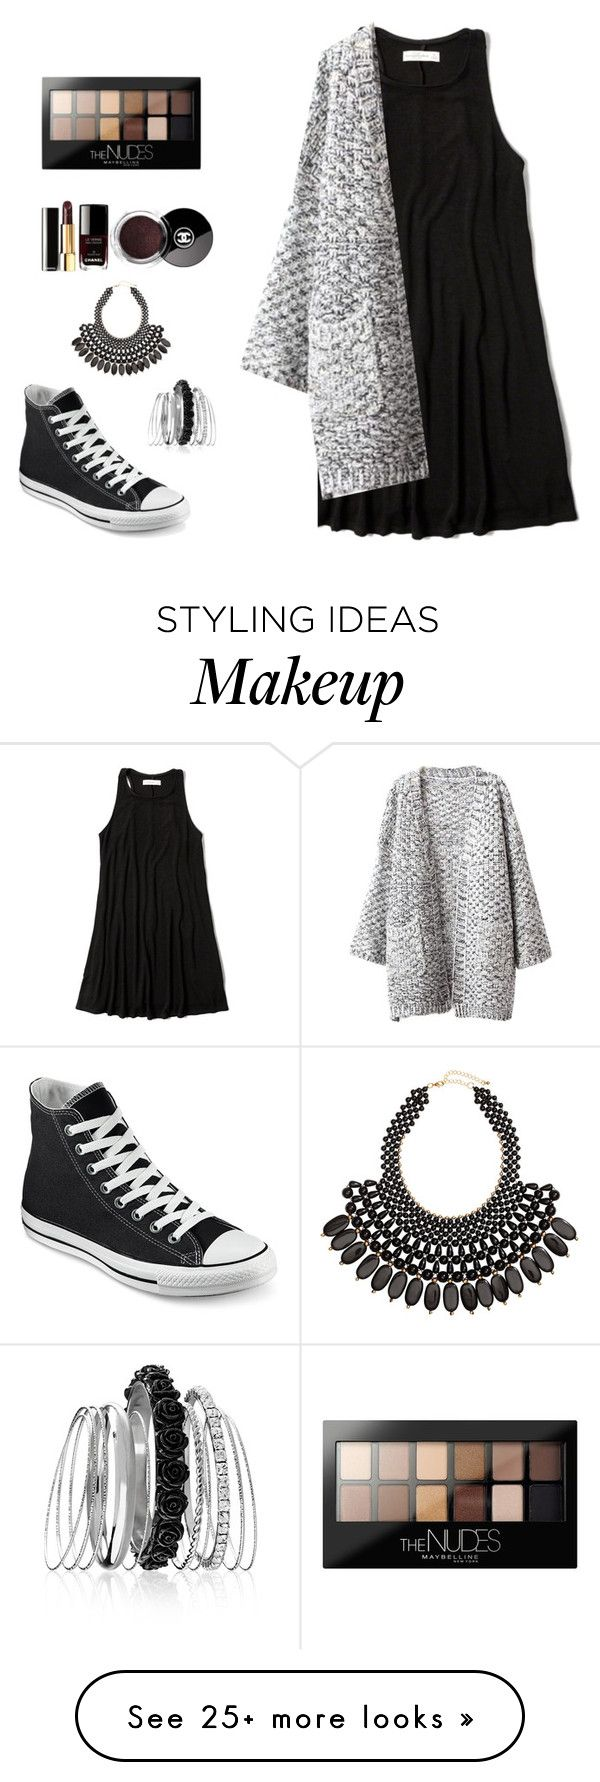 """Untitled"" by annikalabonte on Polyvore featuring Abercrombie & Fitch, Chicnova Fashion, Converse, Avenue, H&M and Maybelline"